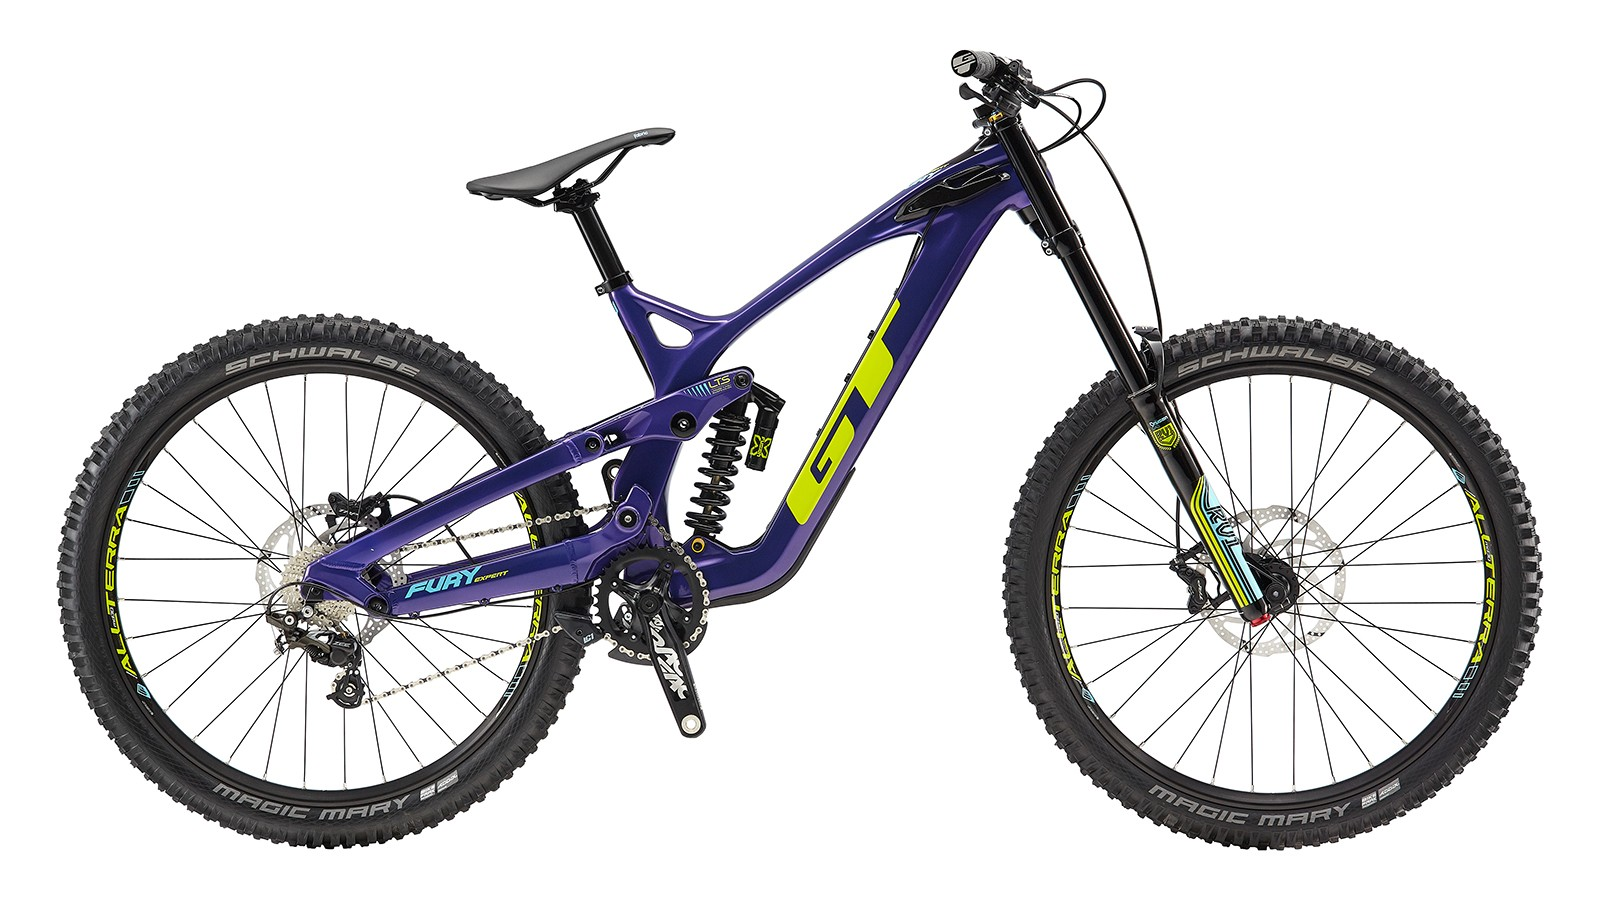 The GT Fury Carbon Expert 27.5